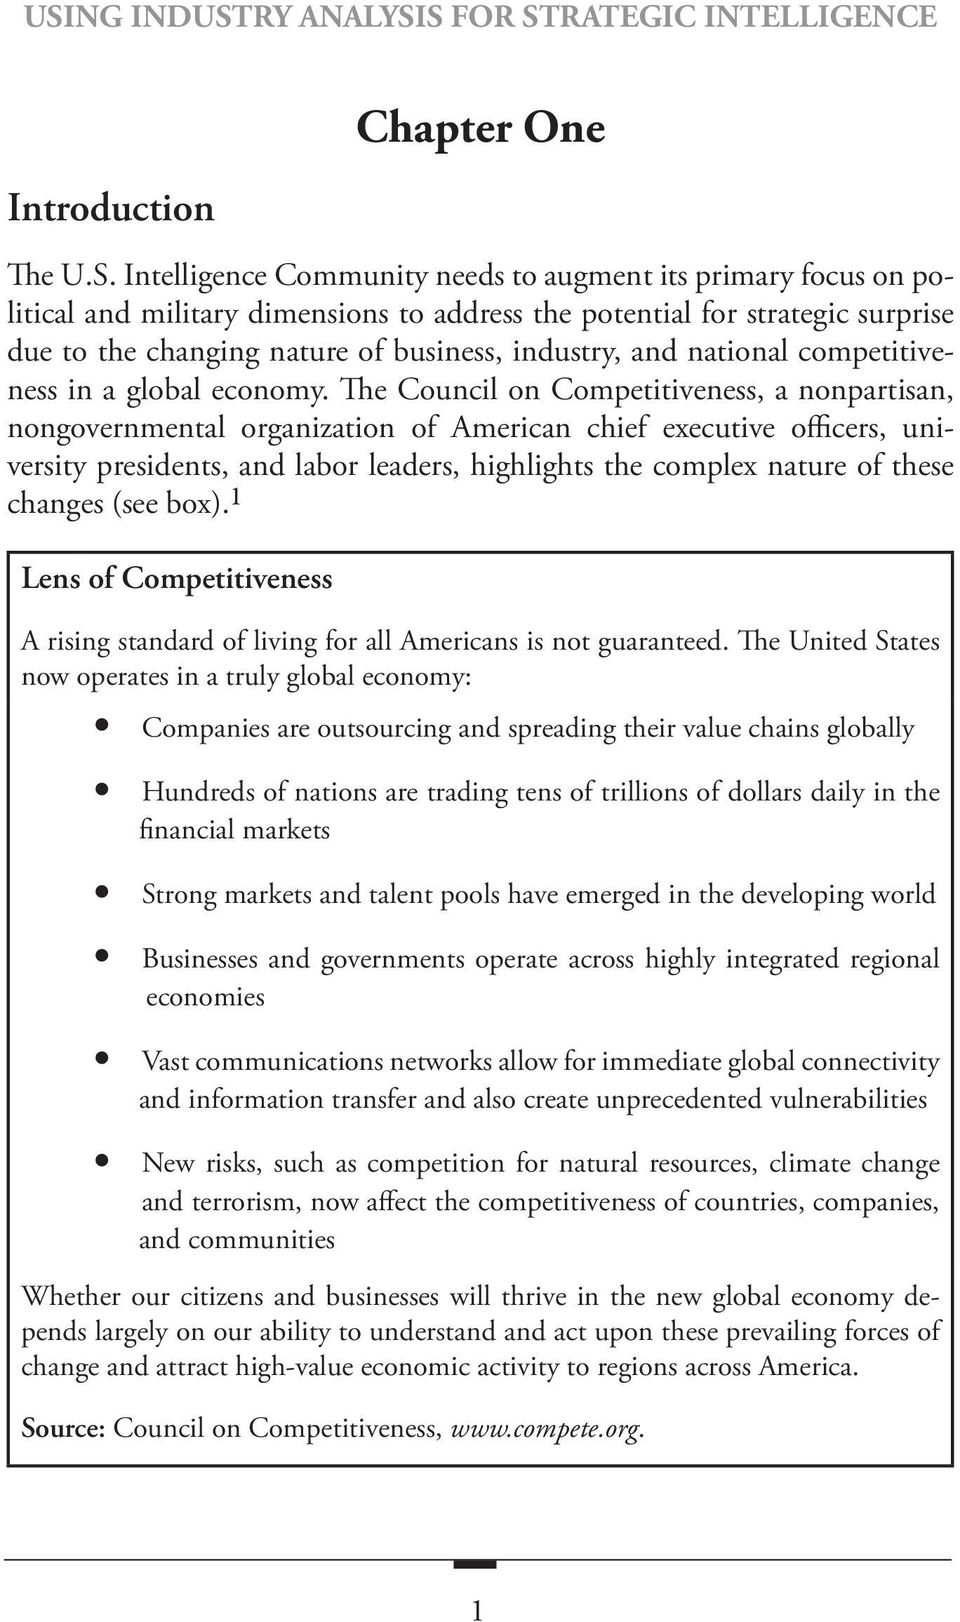 The Council on Competitiveness, a nonpartisan, nongovernmental organization of American chief executive officers, university presidents, and labor leaders, highlights the complex nature of these